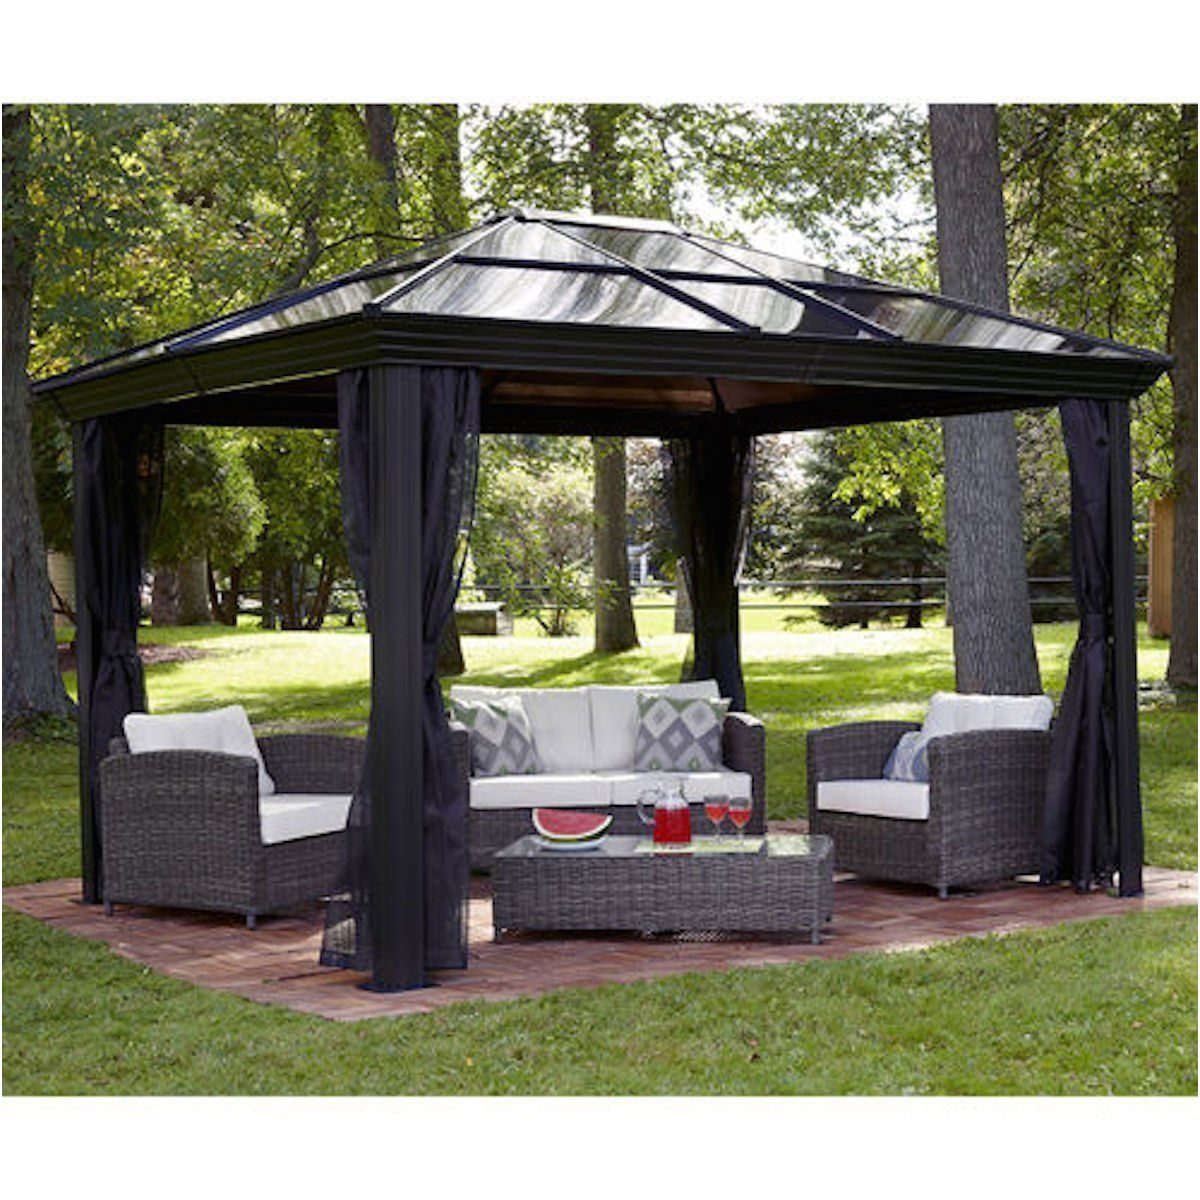 Temporary Flooring Ideas For Portable Gazebos Inspirational Gazebo Canopy Pergola This 10 X 12 Hardtop Gazebo Tent Has Backyard Gazebo Gazebo Tent Patio Canopy